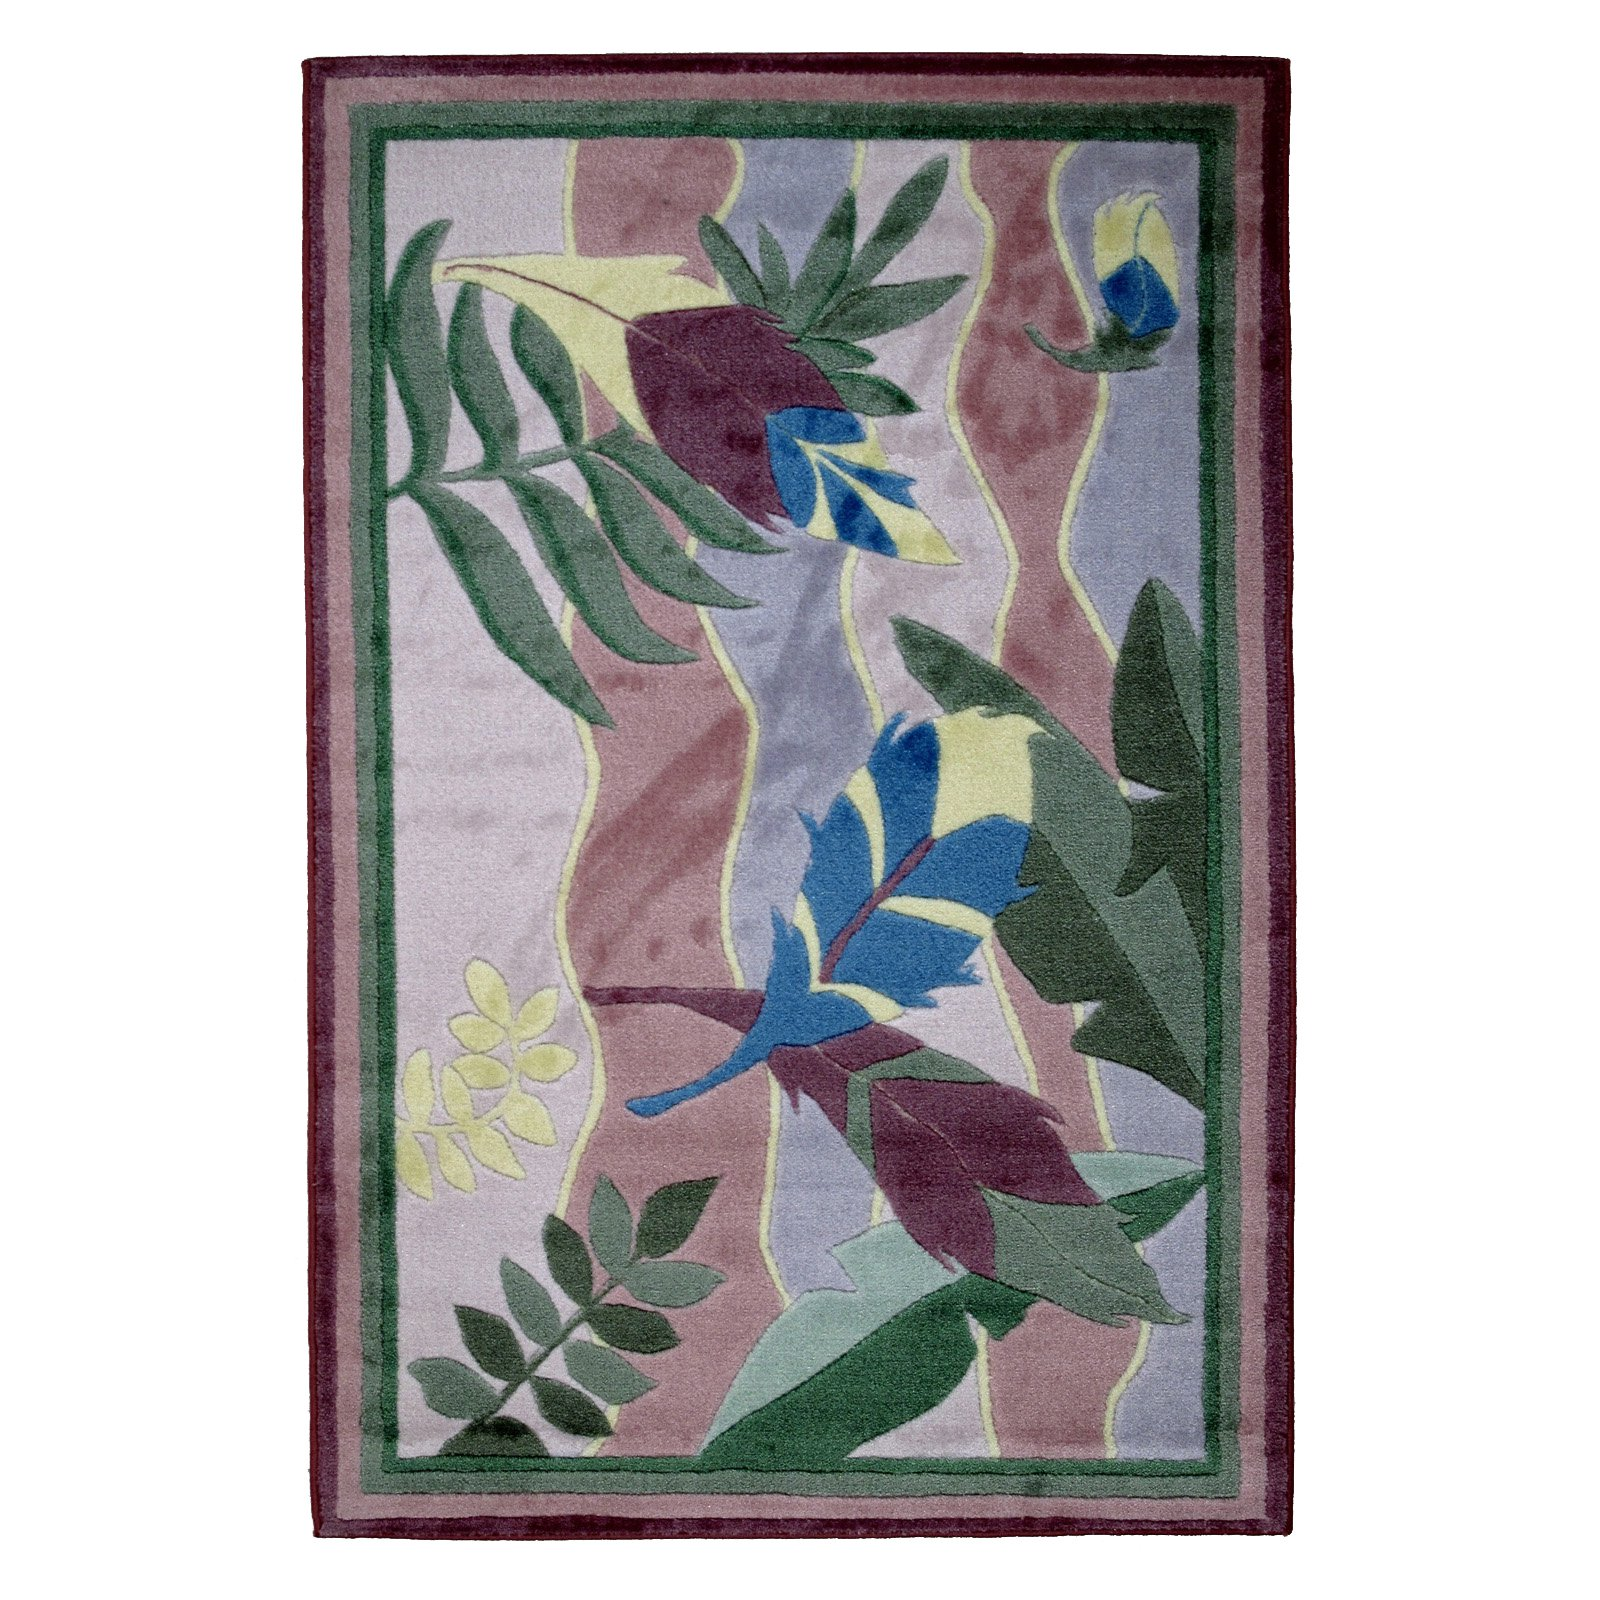 Fun Rugs Jade Reynolds JR-TSC Feathers Area Rug - Multicolor